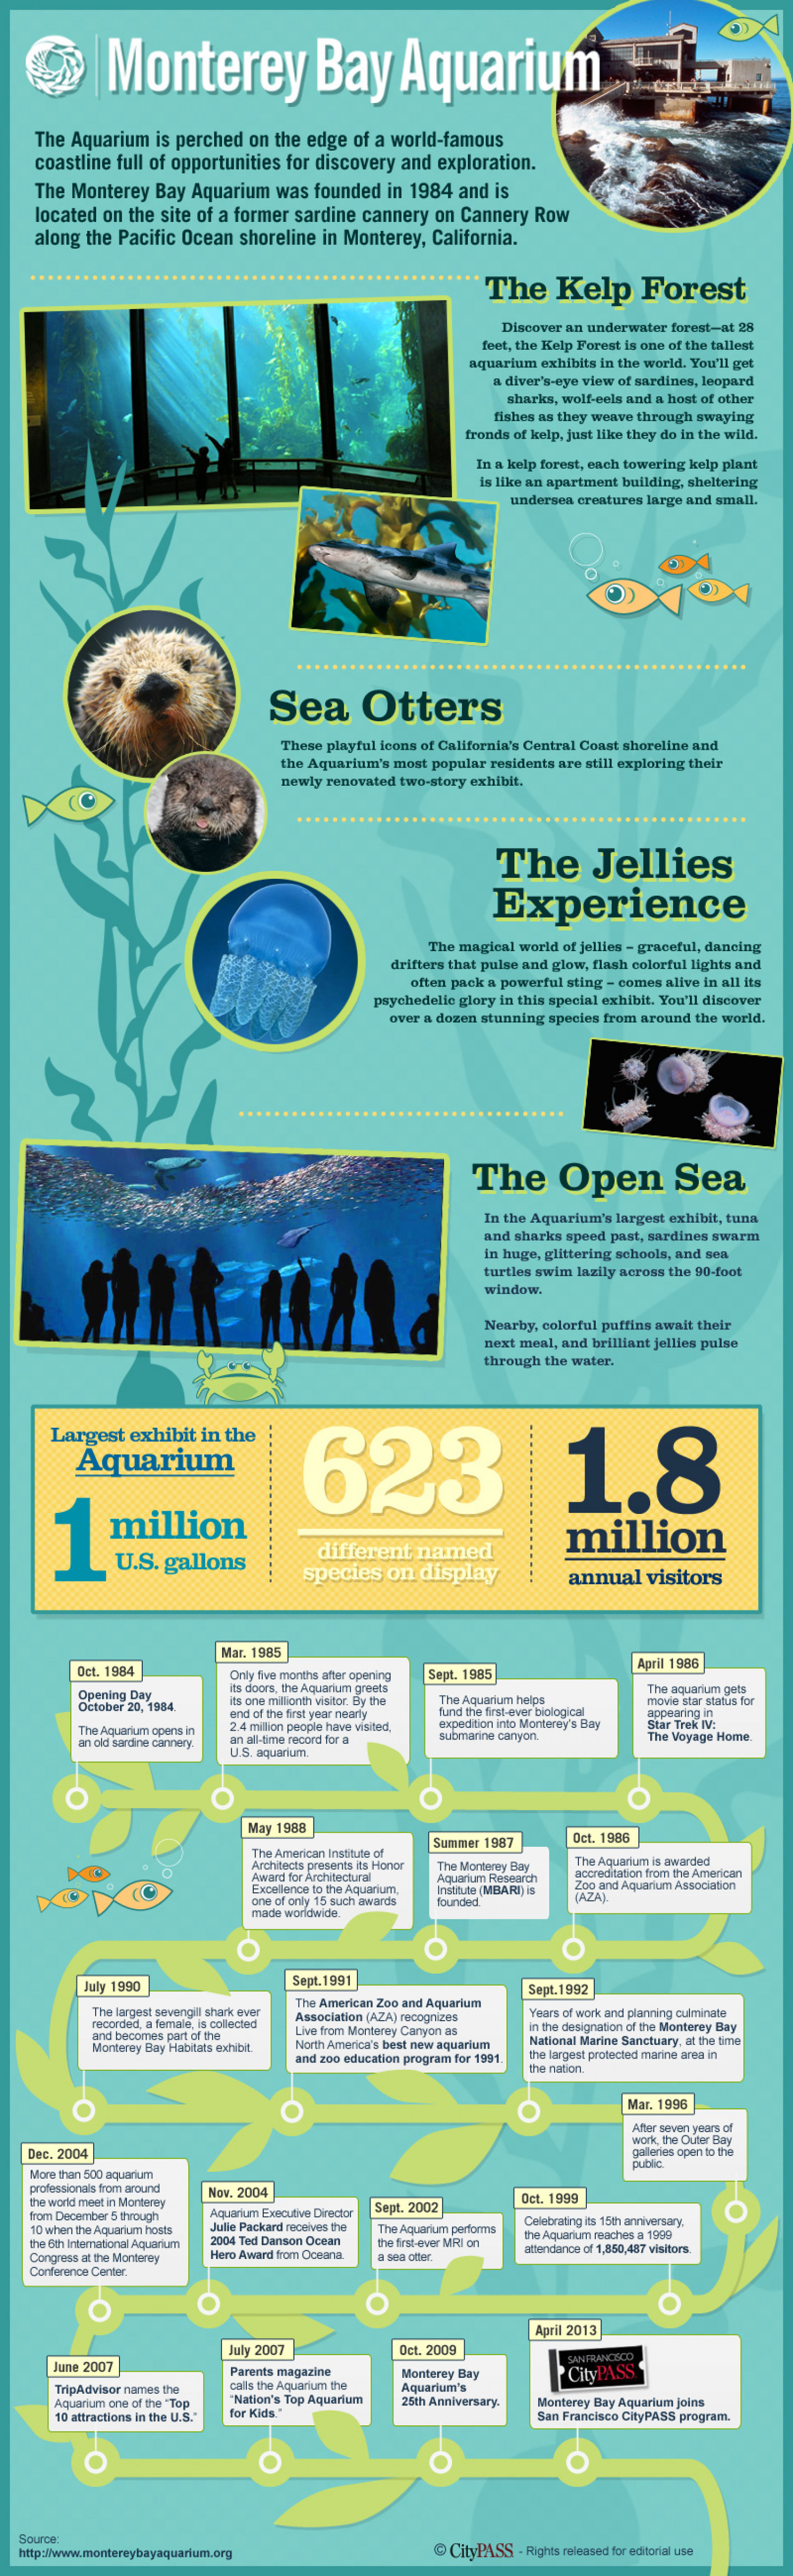 Monterey Bay Aquarium Infographic